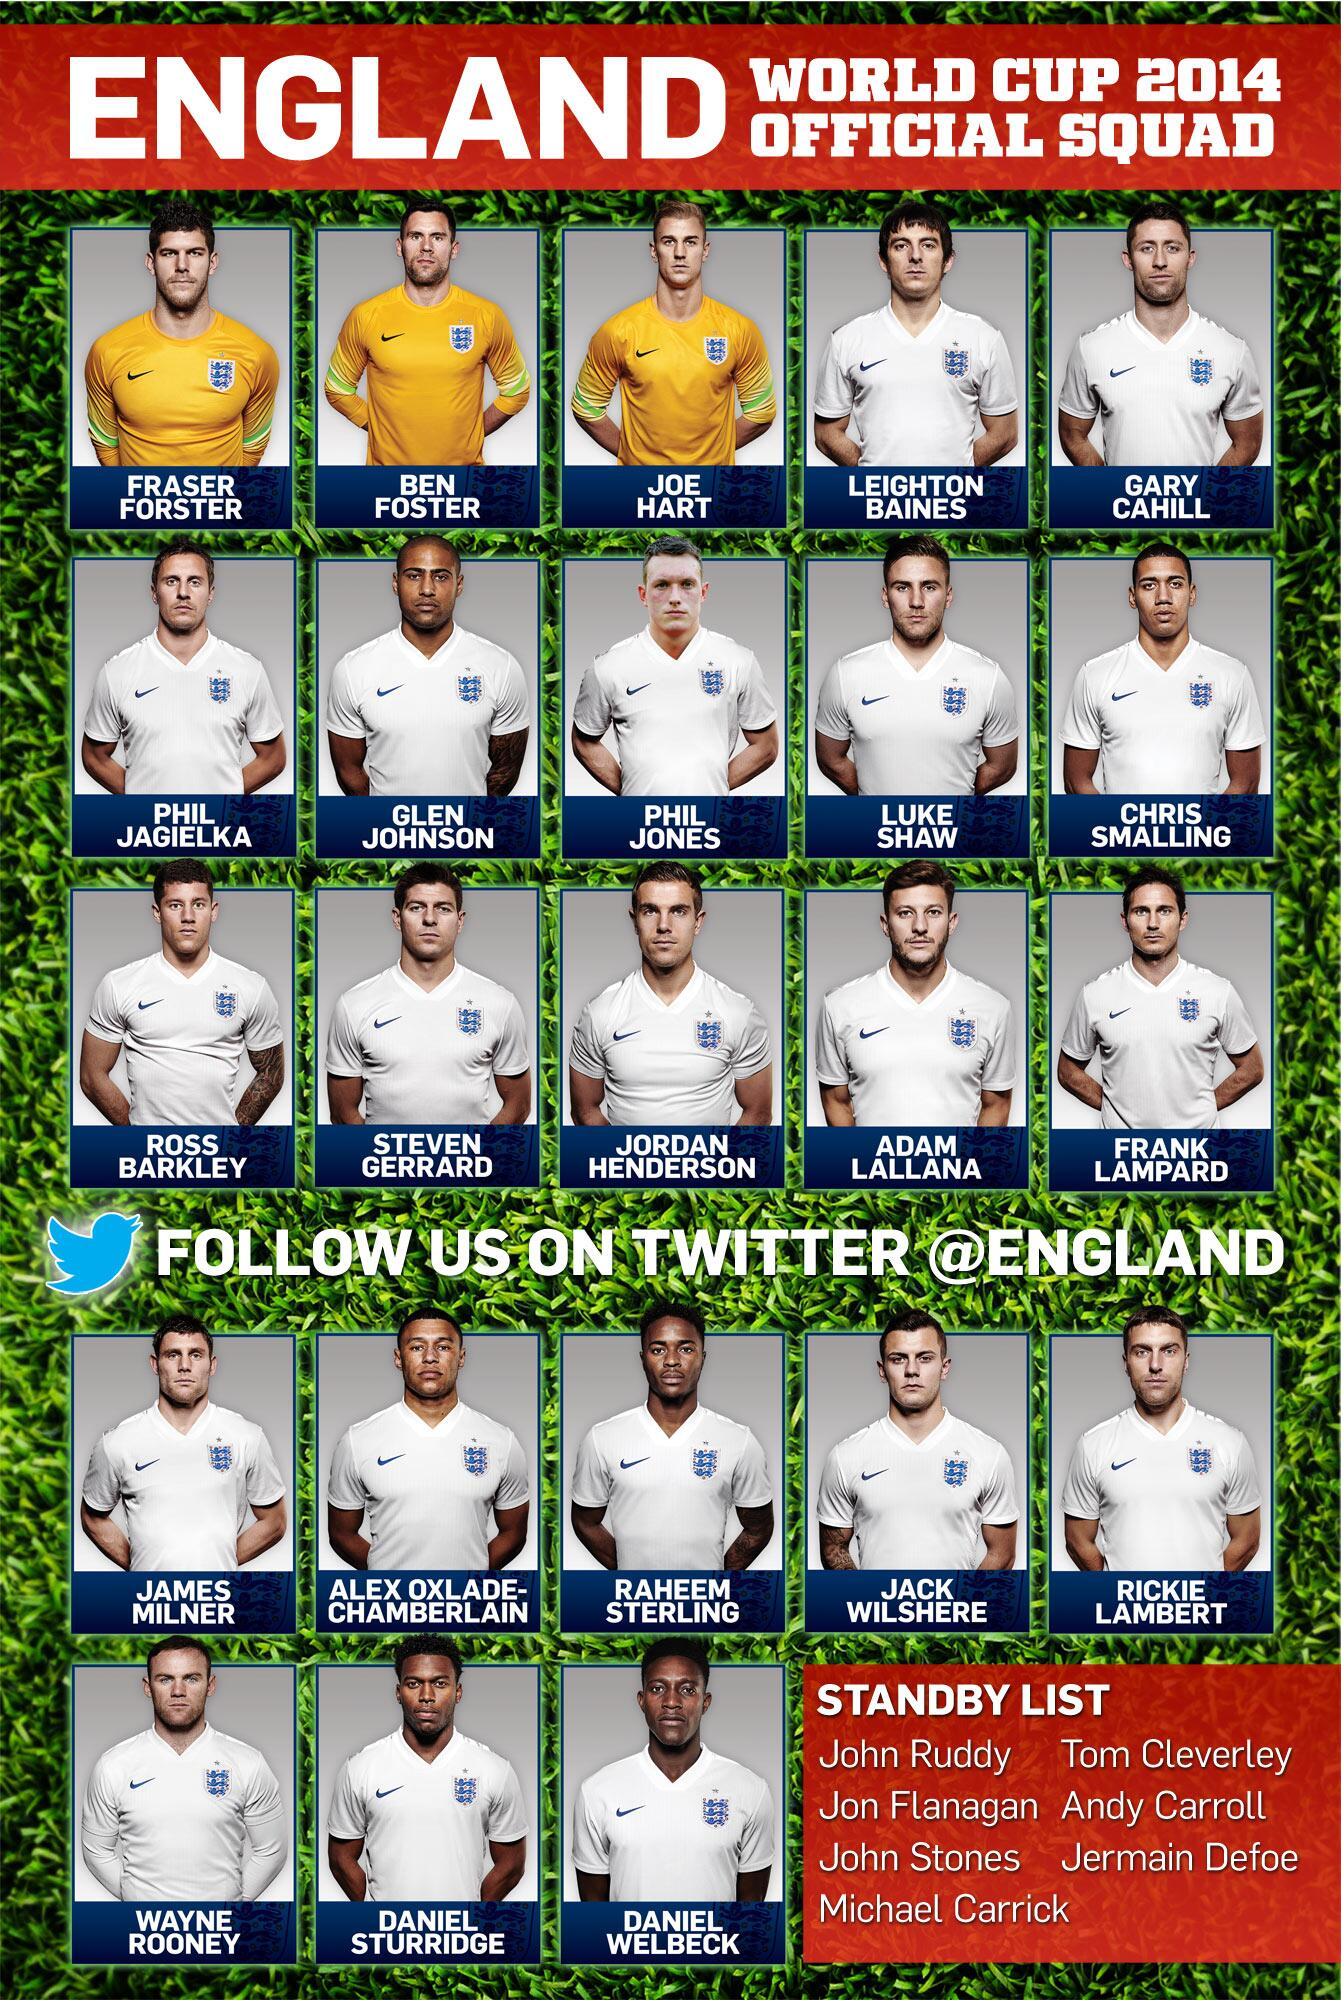 Groupe D (Uruguay, Costa Rica, Angleterre, Italie) Bnb9wUYIIAAcWgR